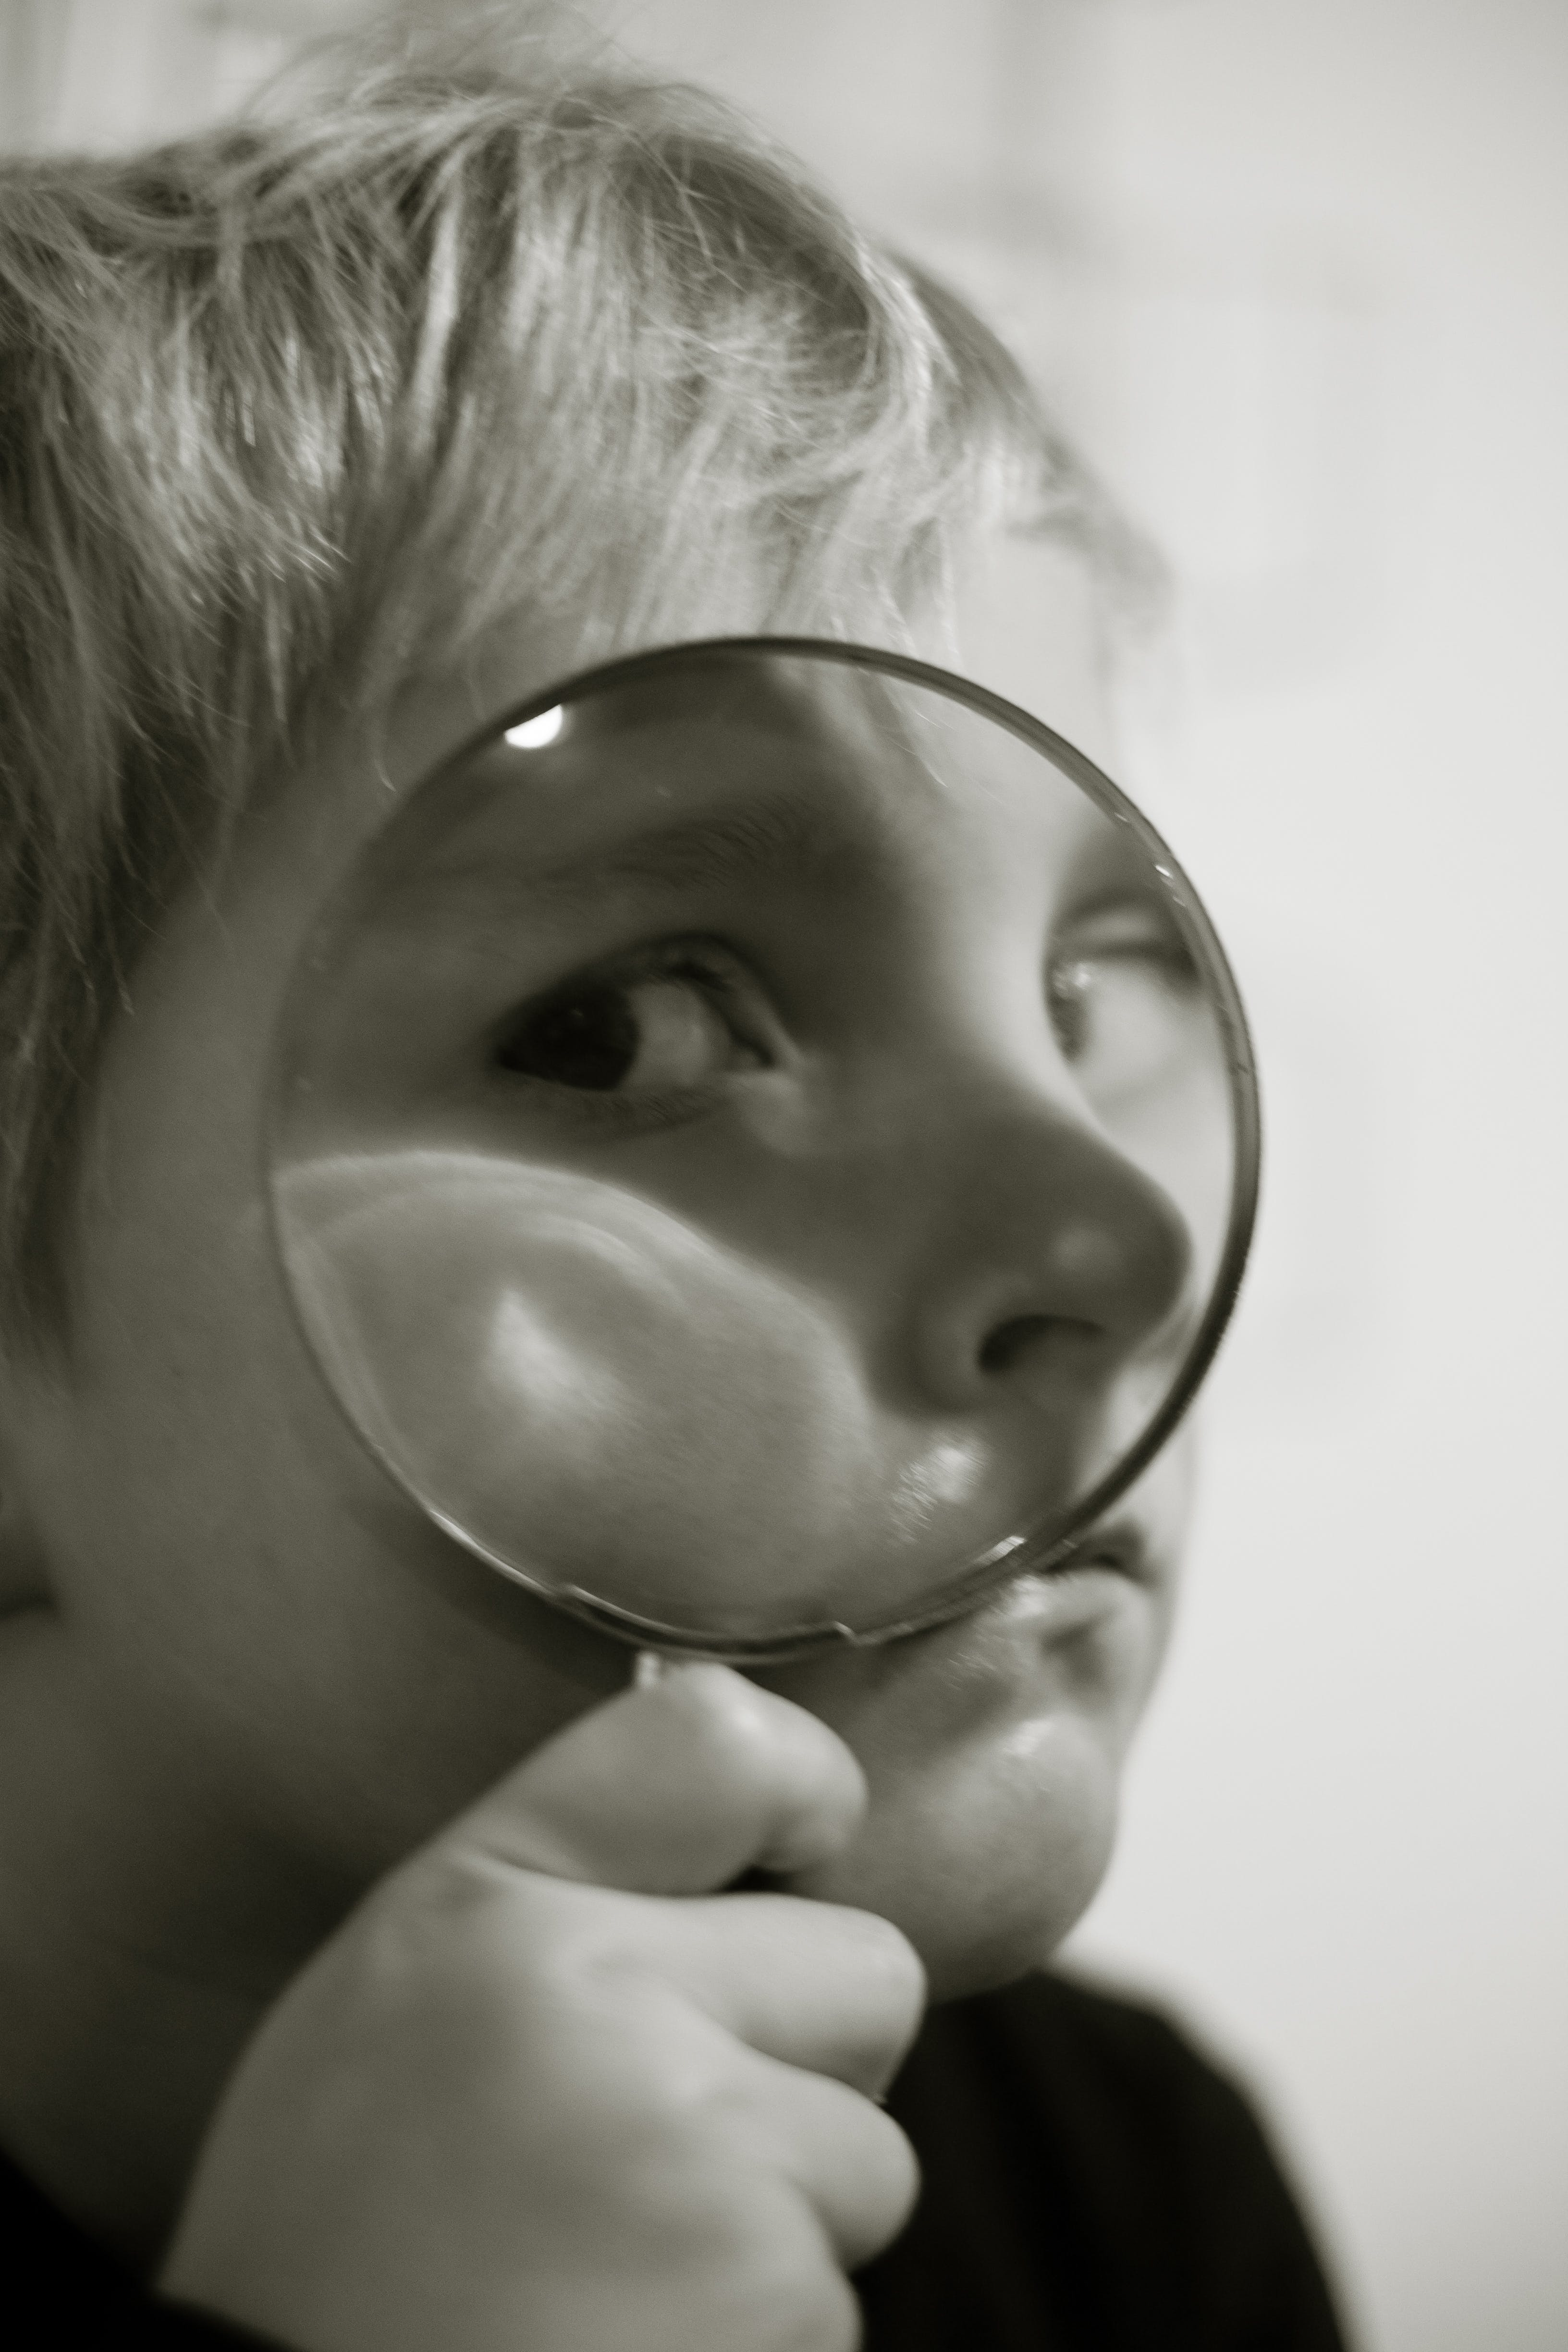 Free stock photo of magnifying glass